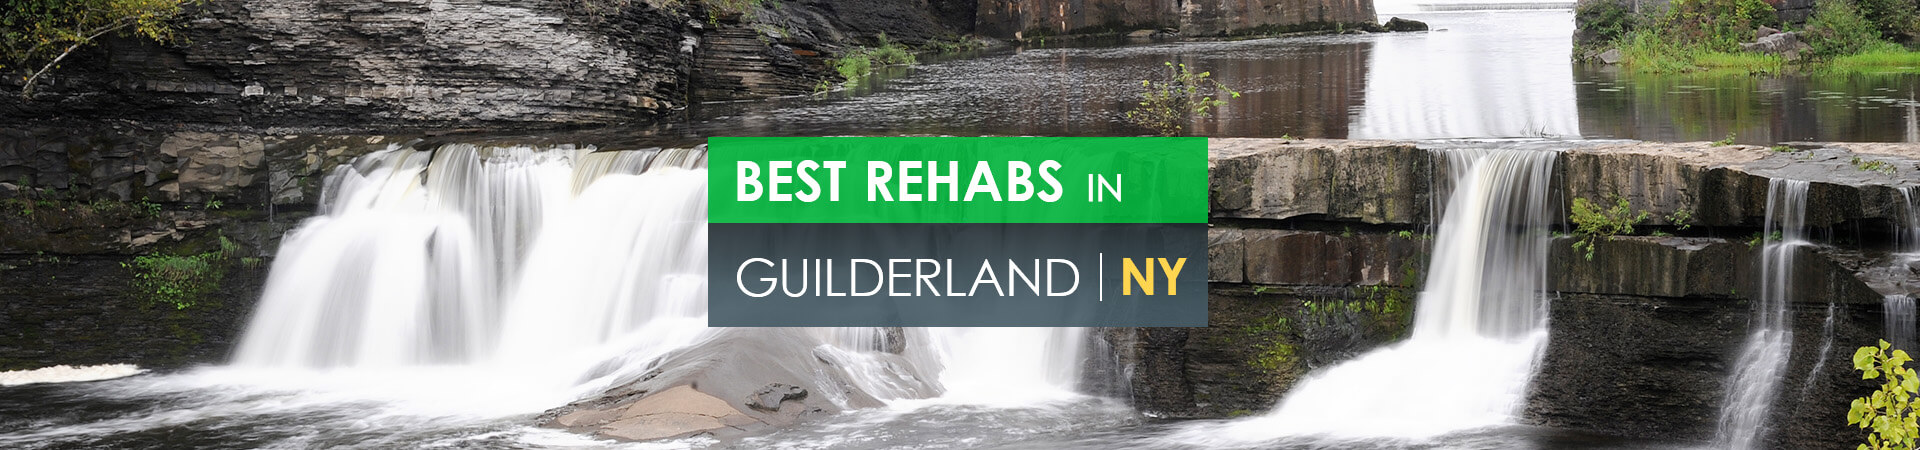 Best rehabs in Guilderland, NY